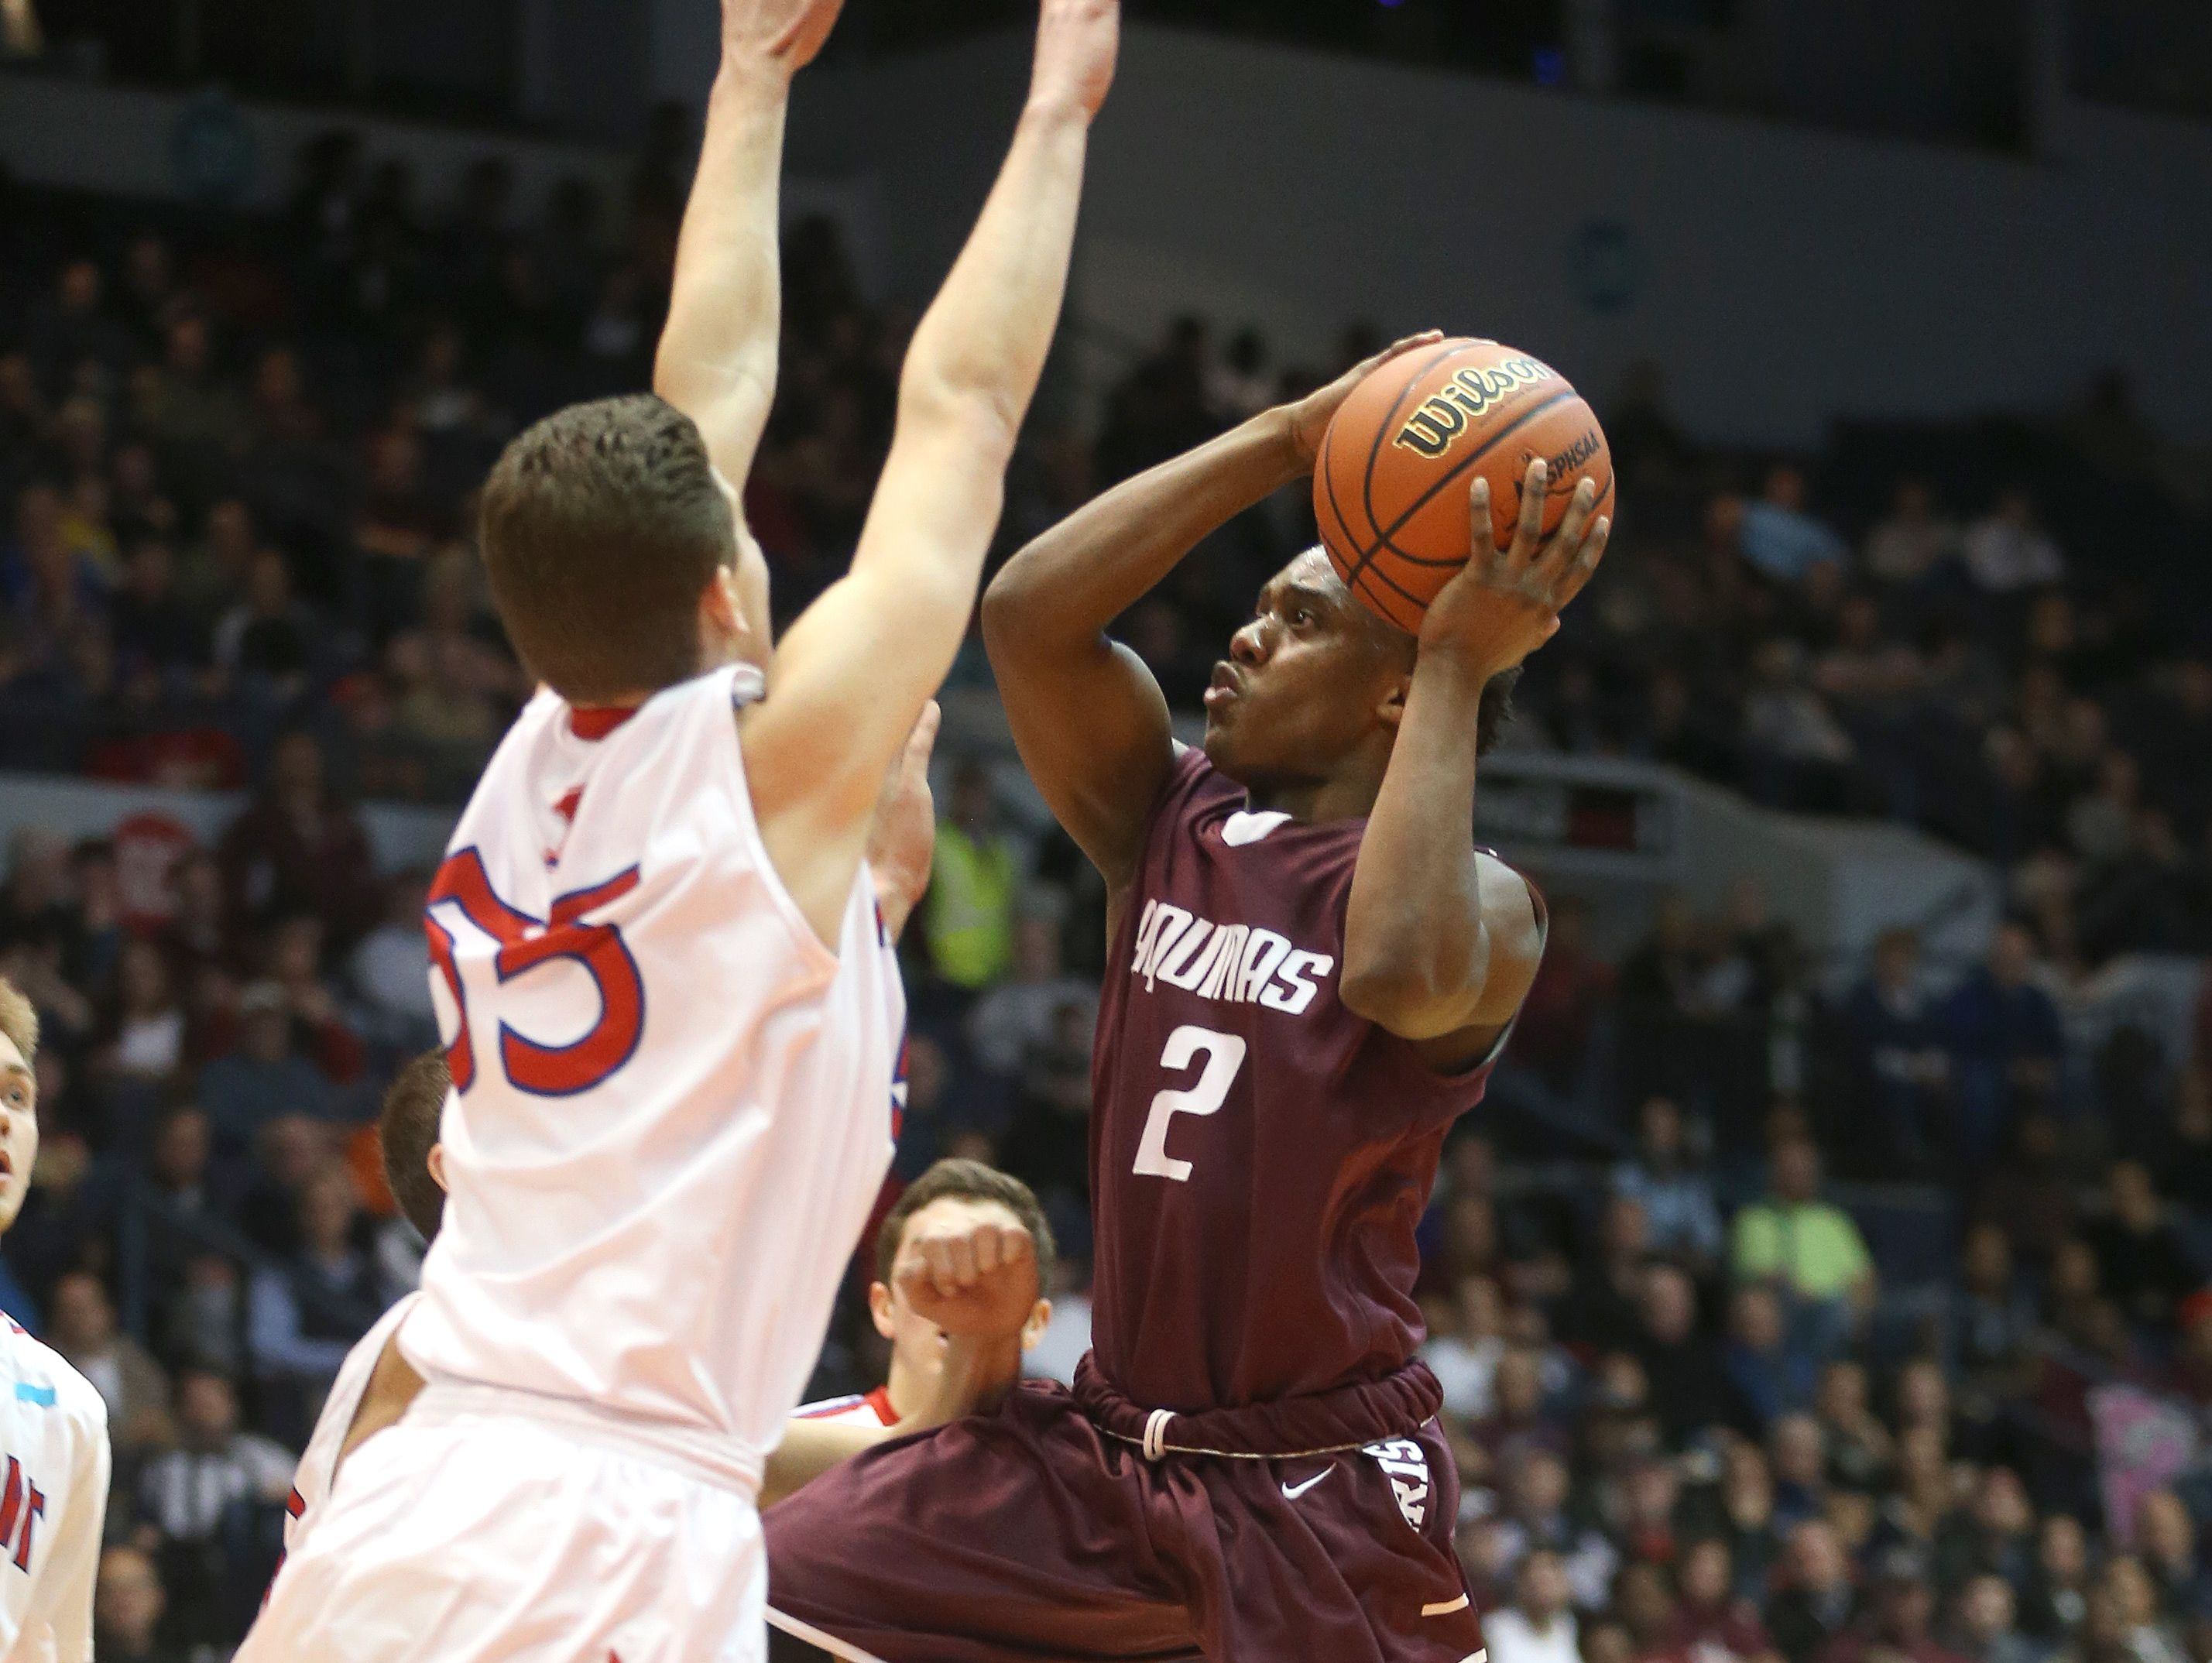 Aquinas's Earnest Edwards drives to the basket against Fairport's Cam Keeley (55). Edwards scored 23 in a 47-43 Aquinas win in the Class AA final.